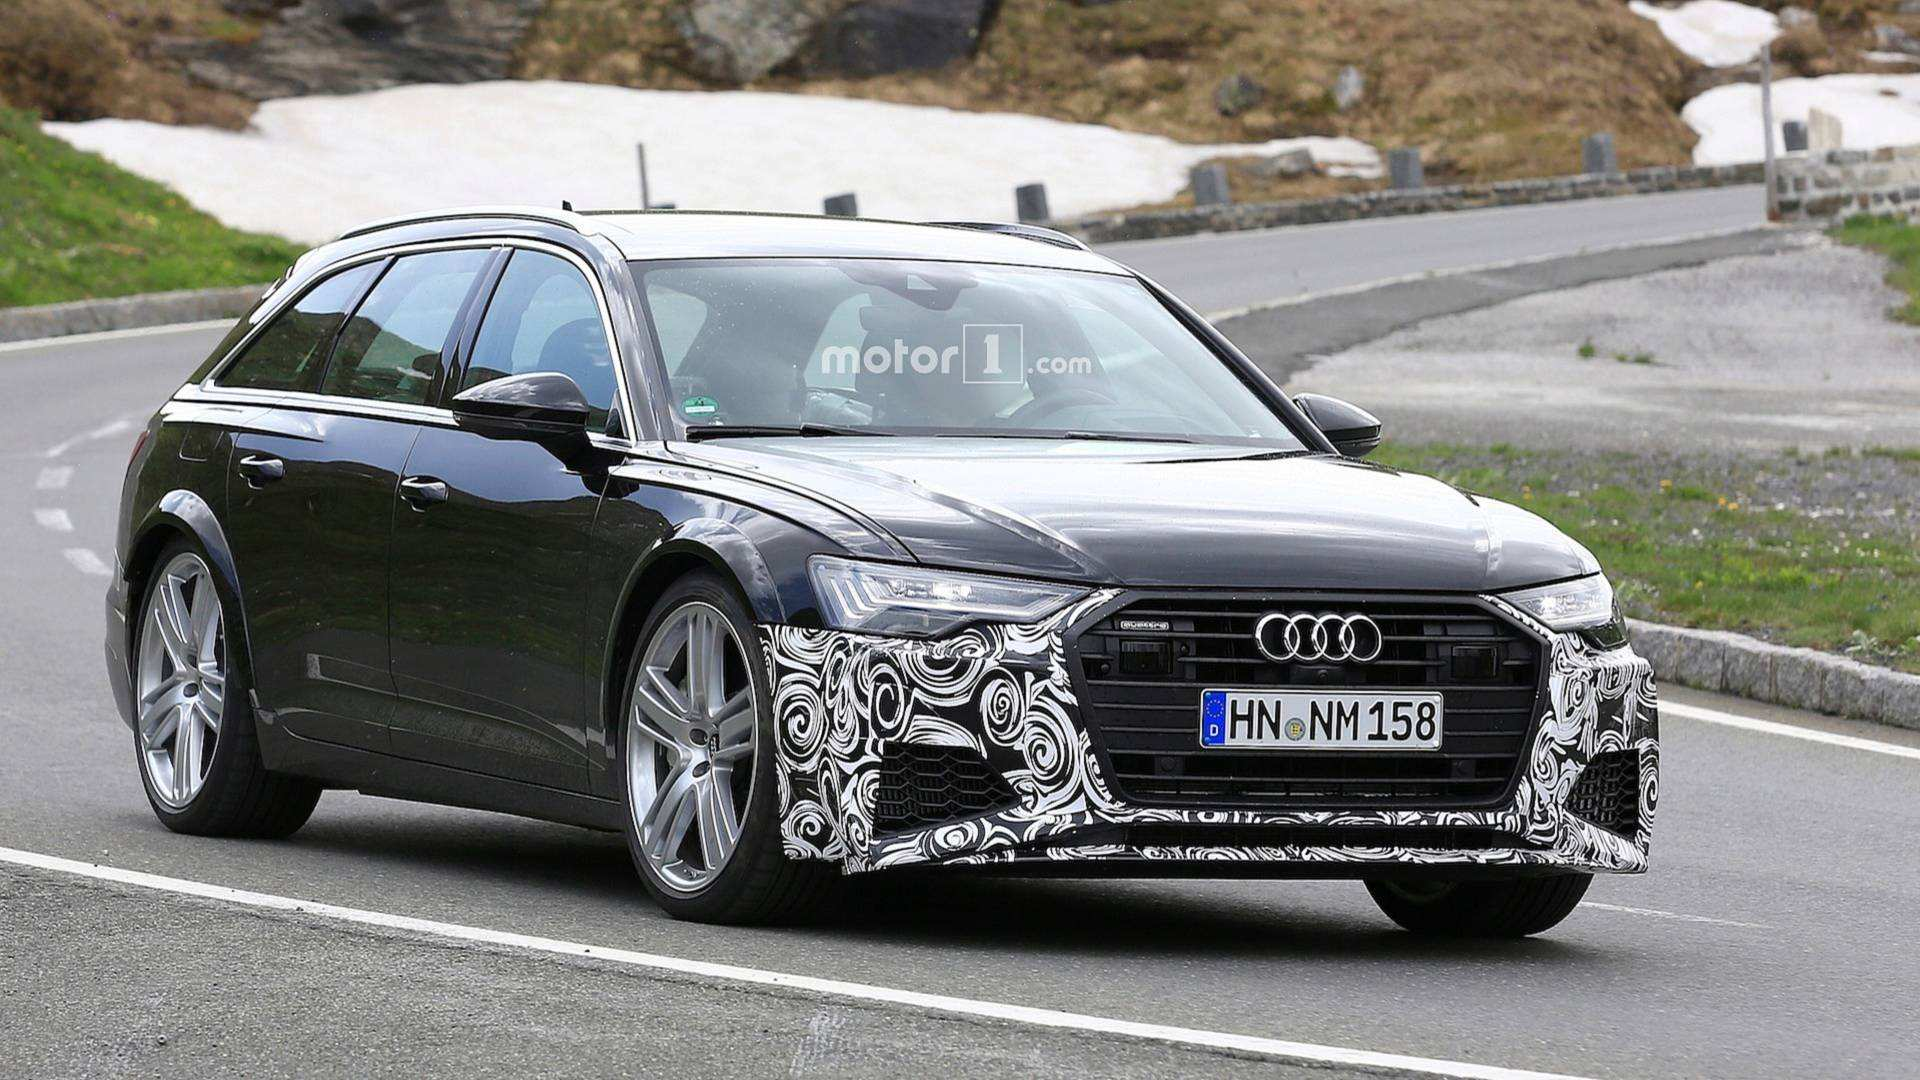 58 Best Review 2019 Audi Rs6 Pictures for 2019 Audi Rs6